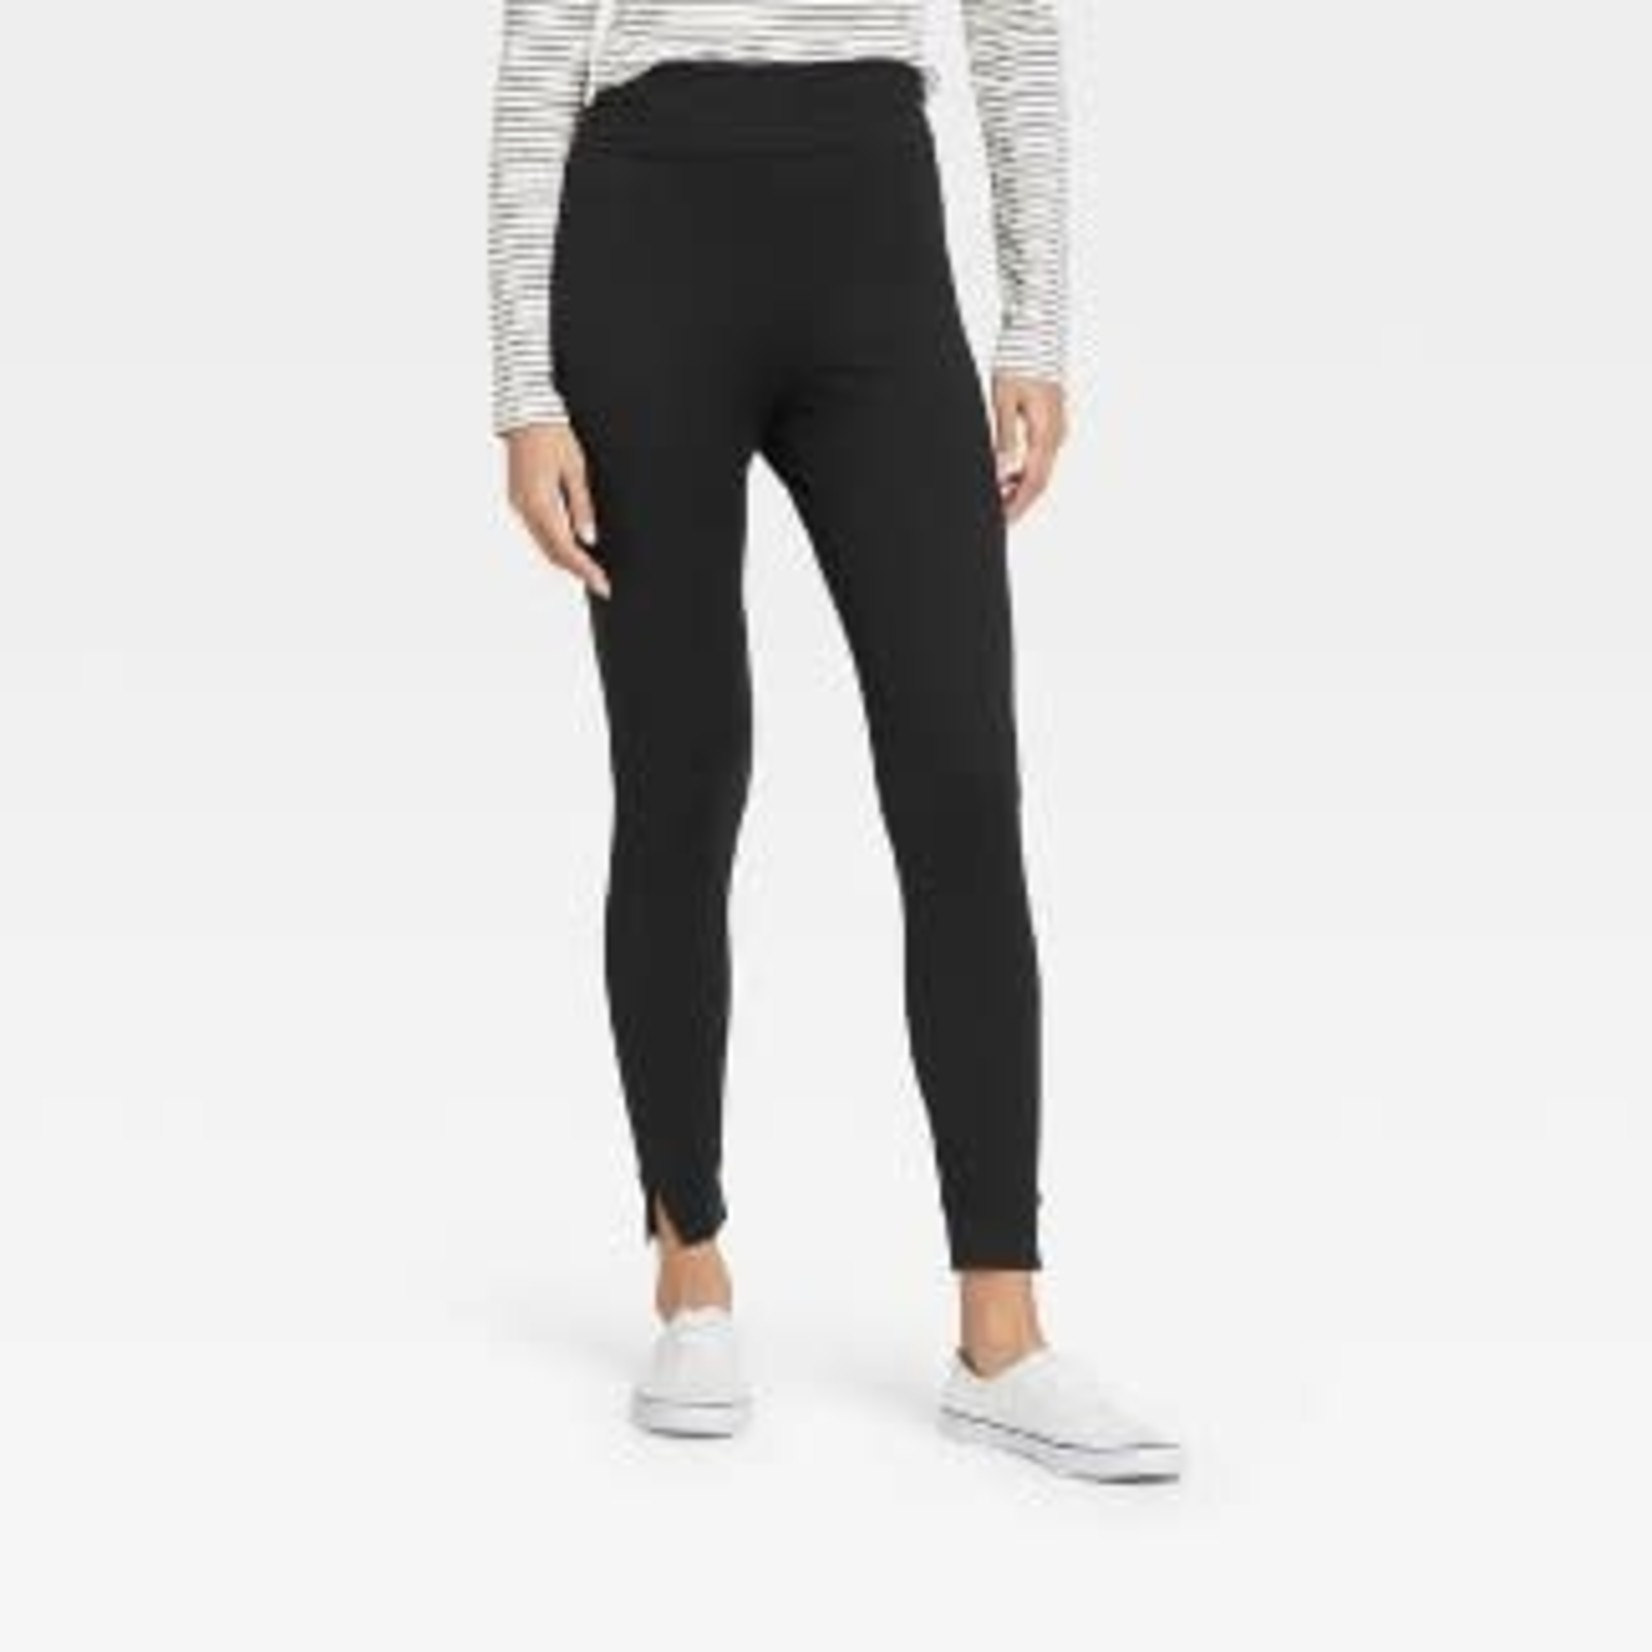 a new day   Women's Brushed Leggings with Foldover Waistband and Split Hem Cuffs - M,XL